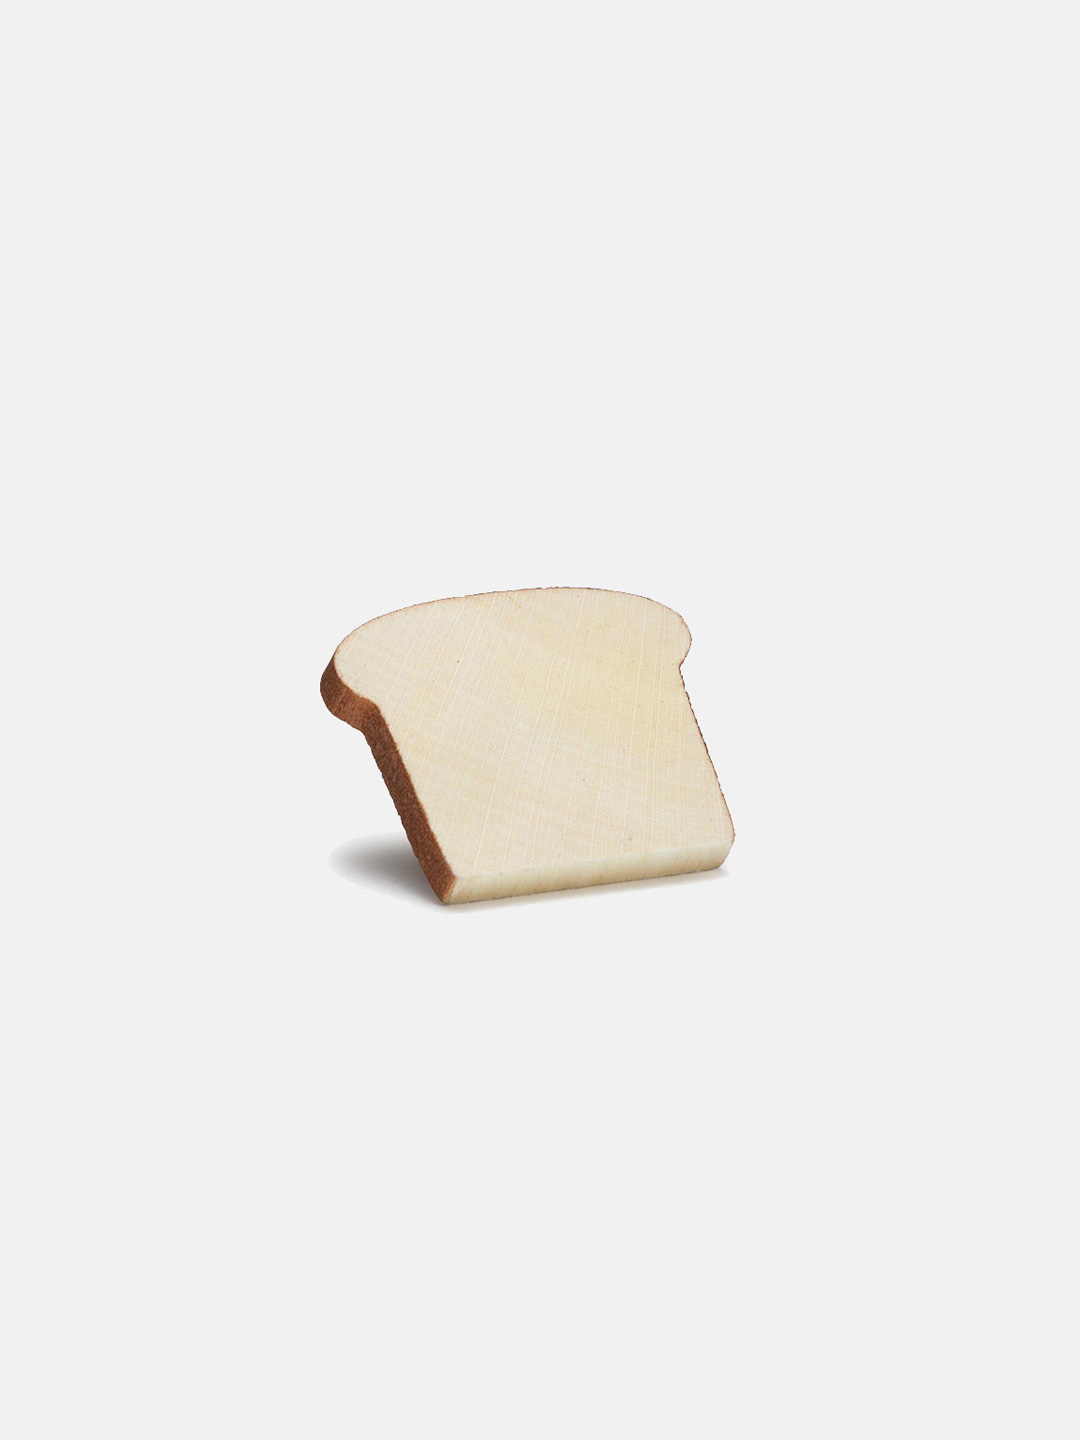 Wooden Food - Slice of Toast